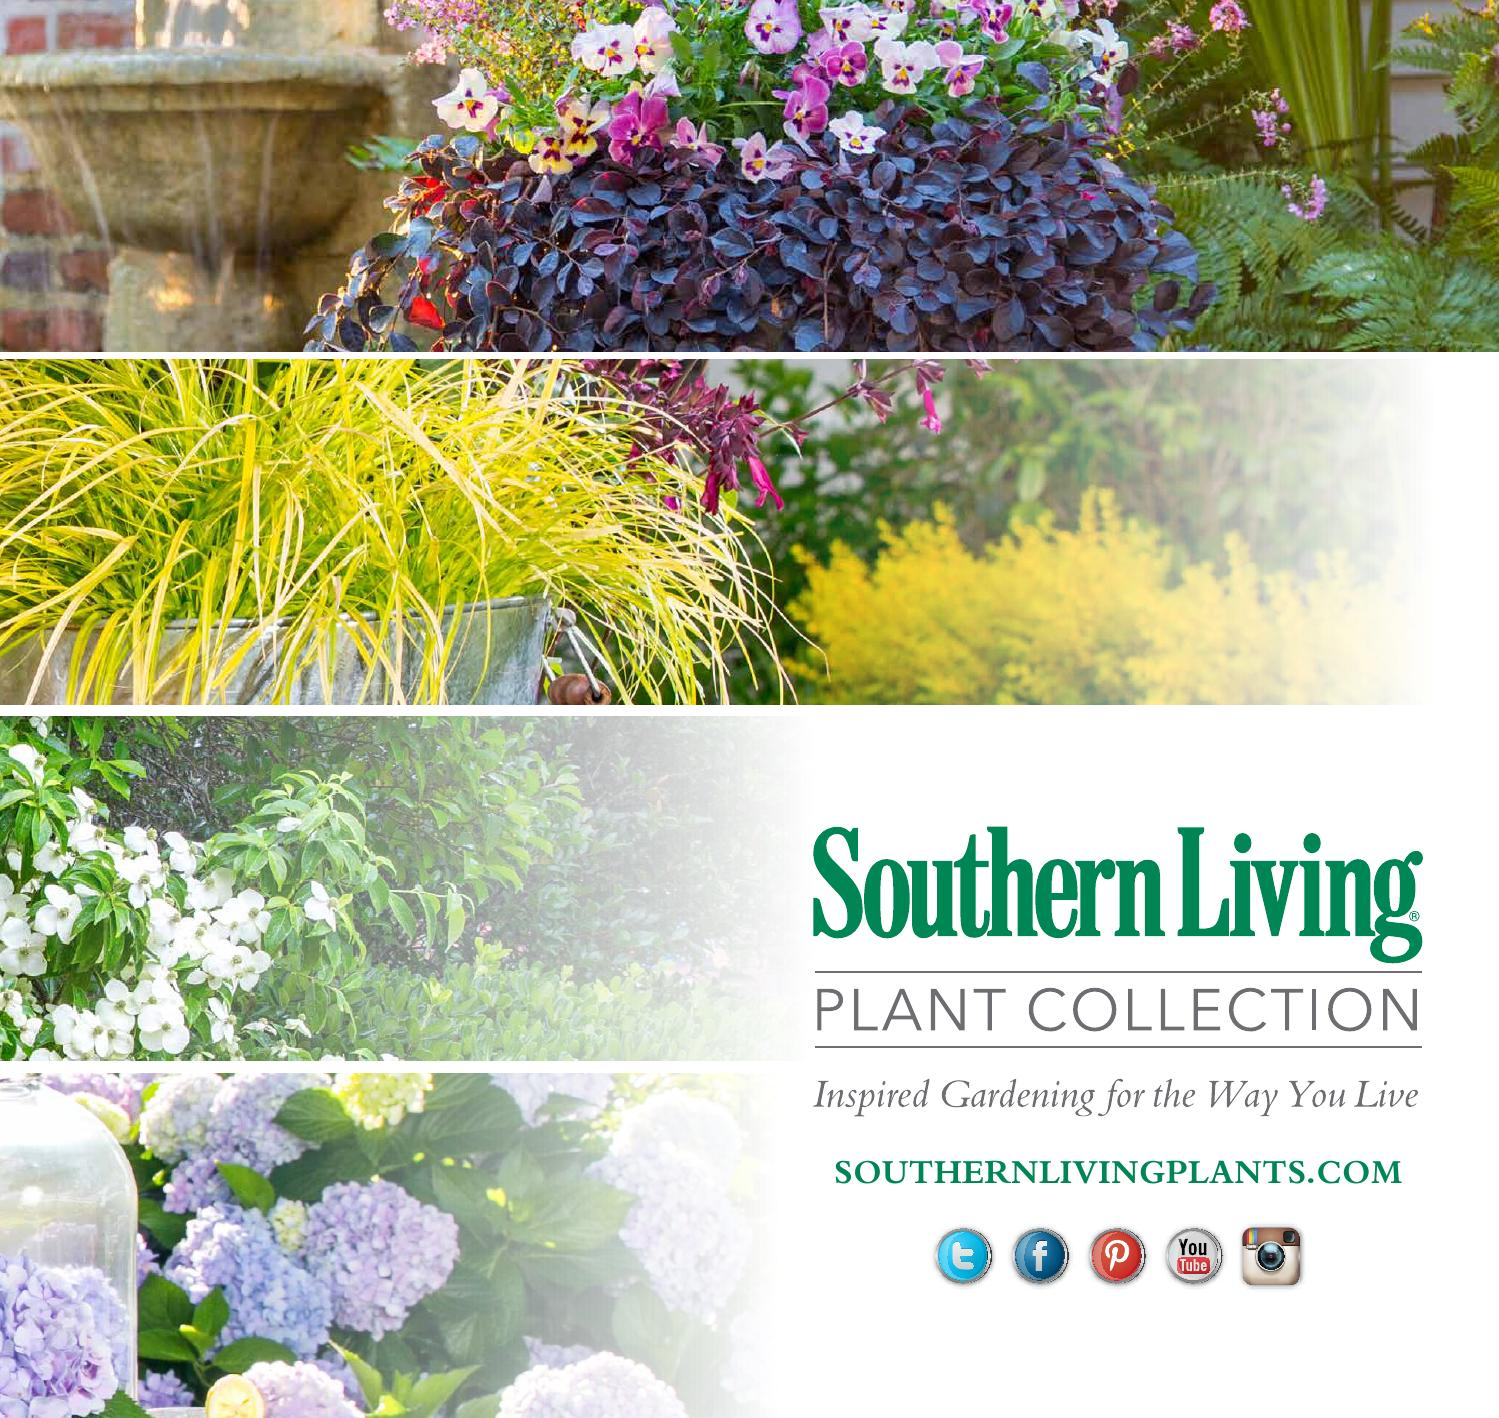 Southern Living Plant Collection : Southern Living Plant Collection 2016 Brochure by ...